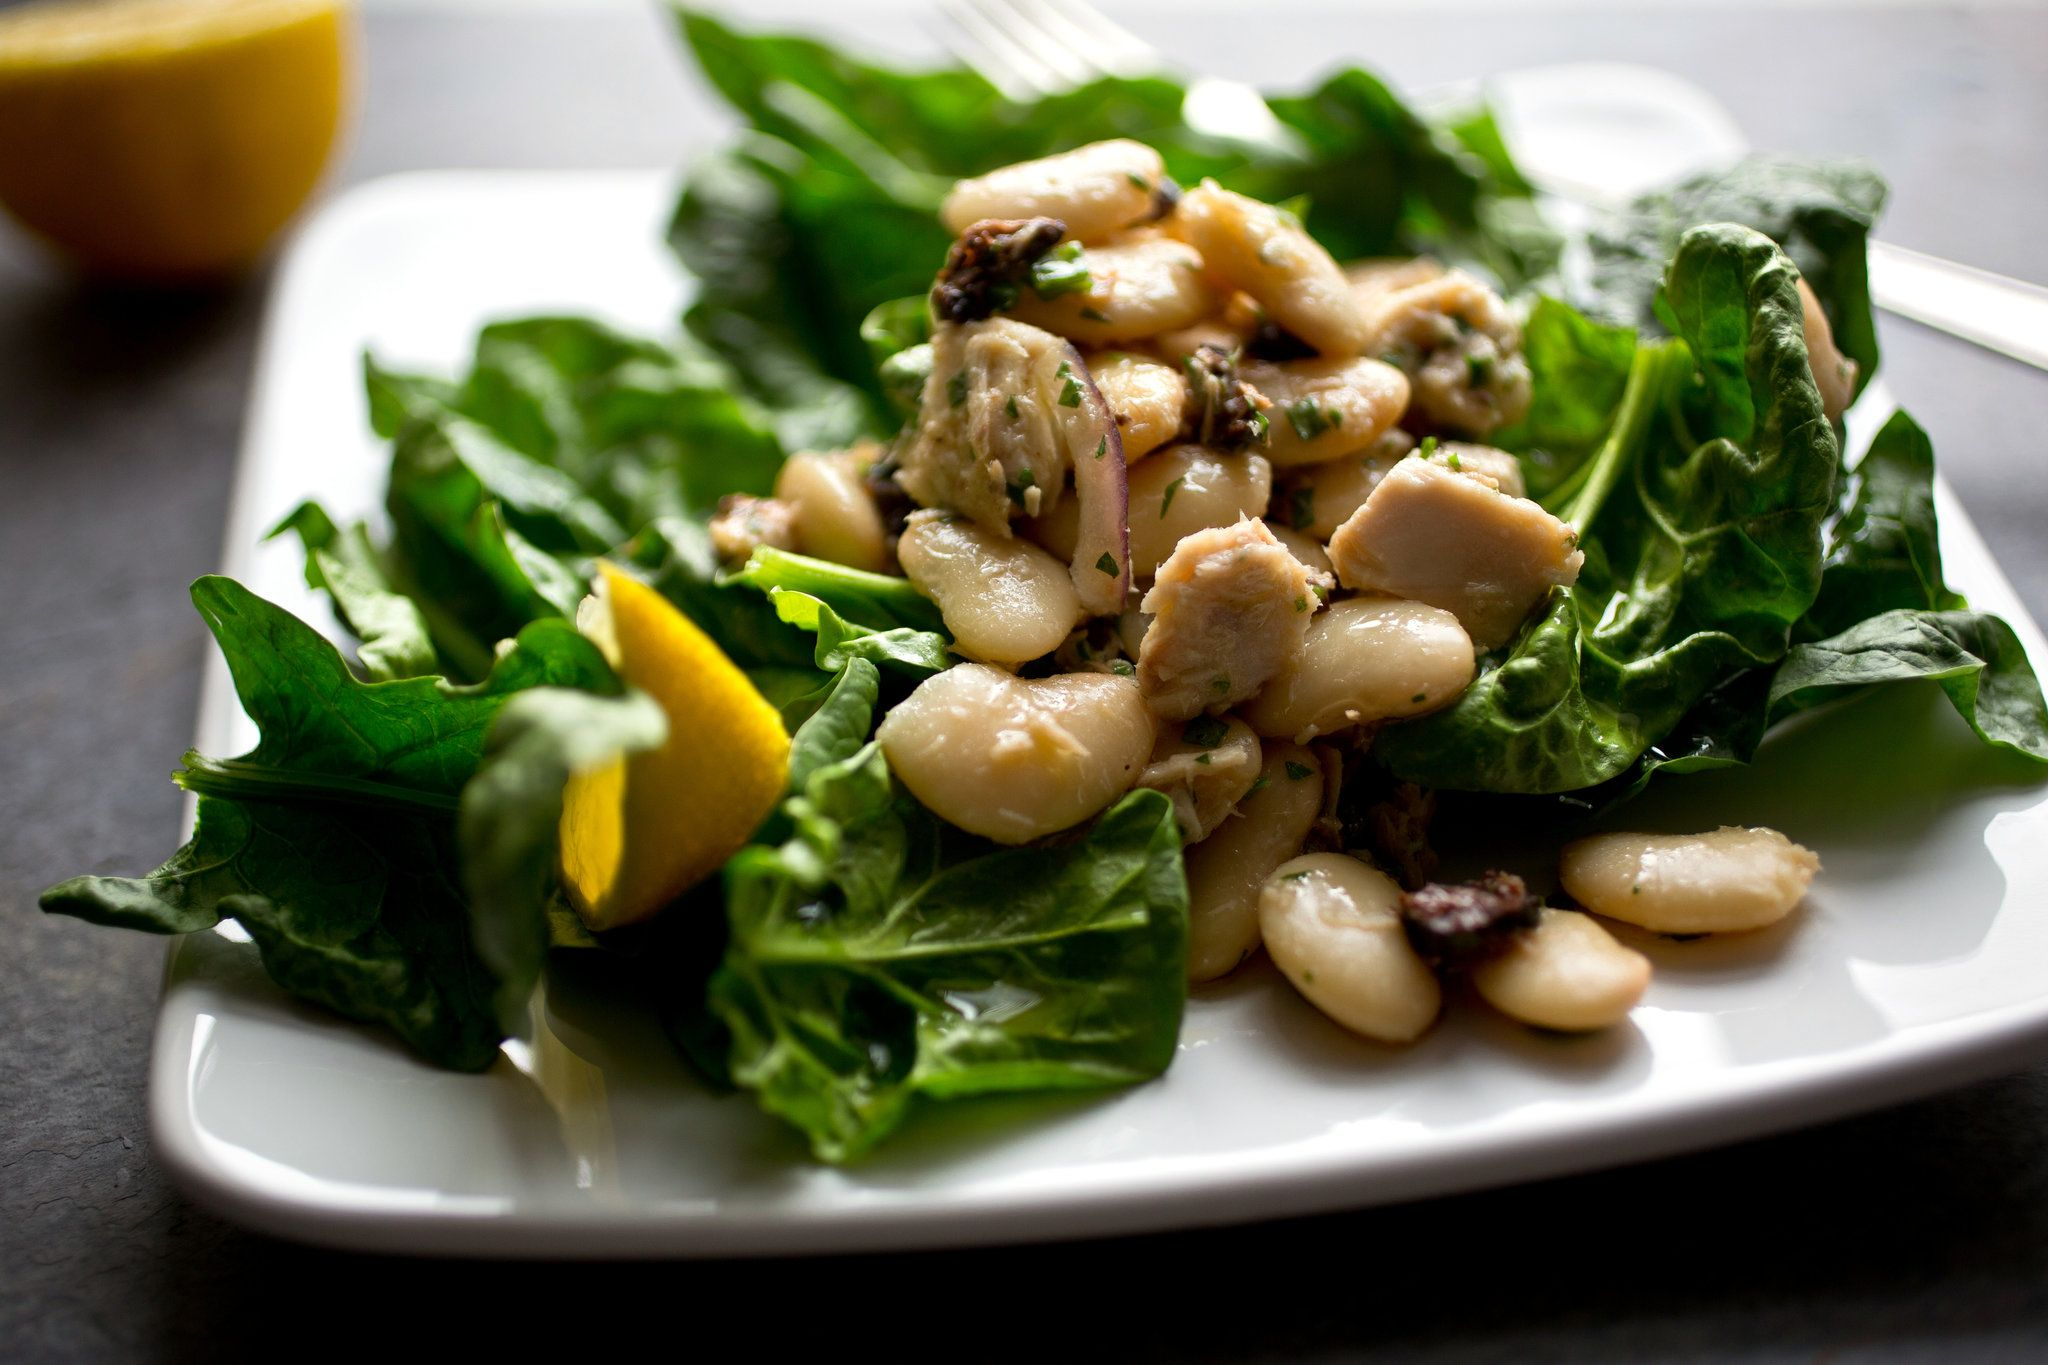 Large White Bean Tuna And Spinach Salad Recipe Spinach Salad Recipes Nyt Cooking Spinach Salad